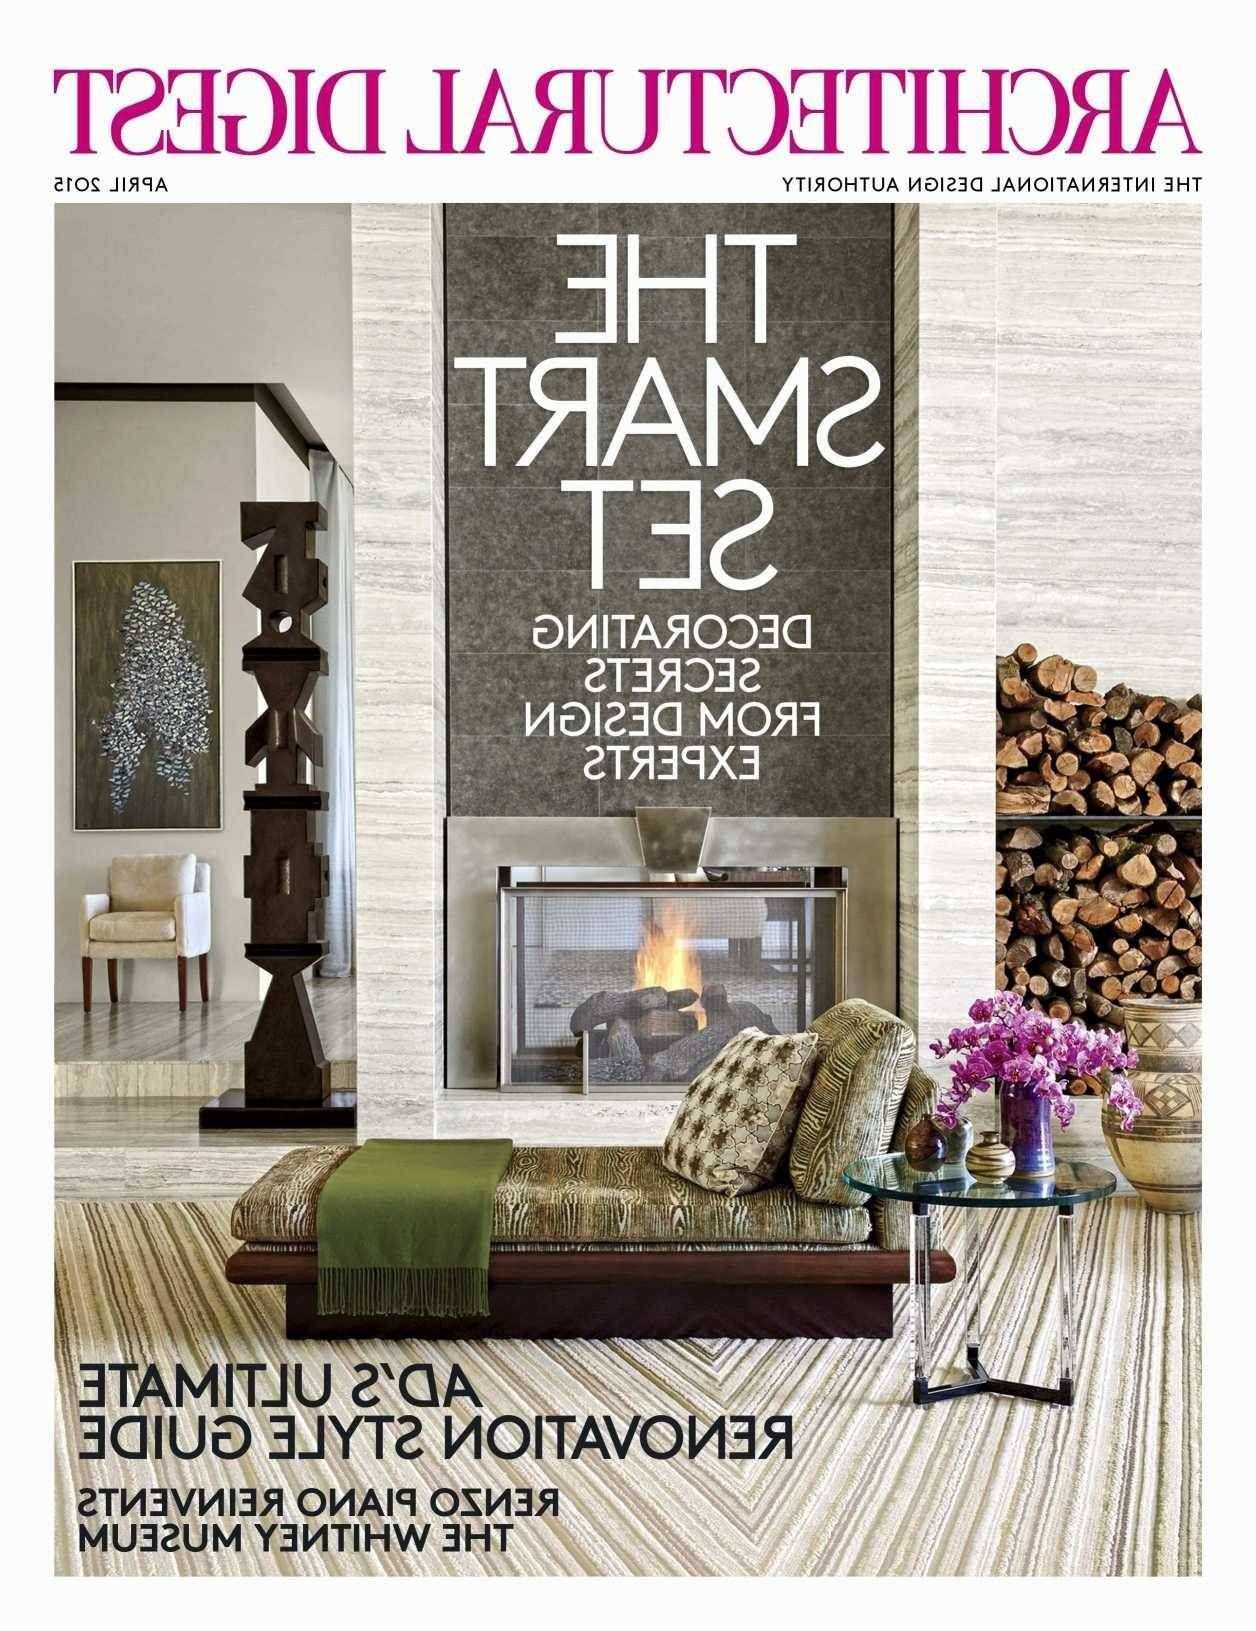 Beaut Home Interior Decorating Catalogs More Image Visit S On Home ...